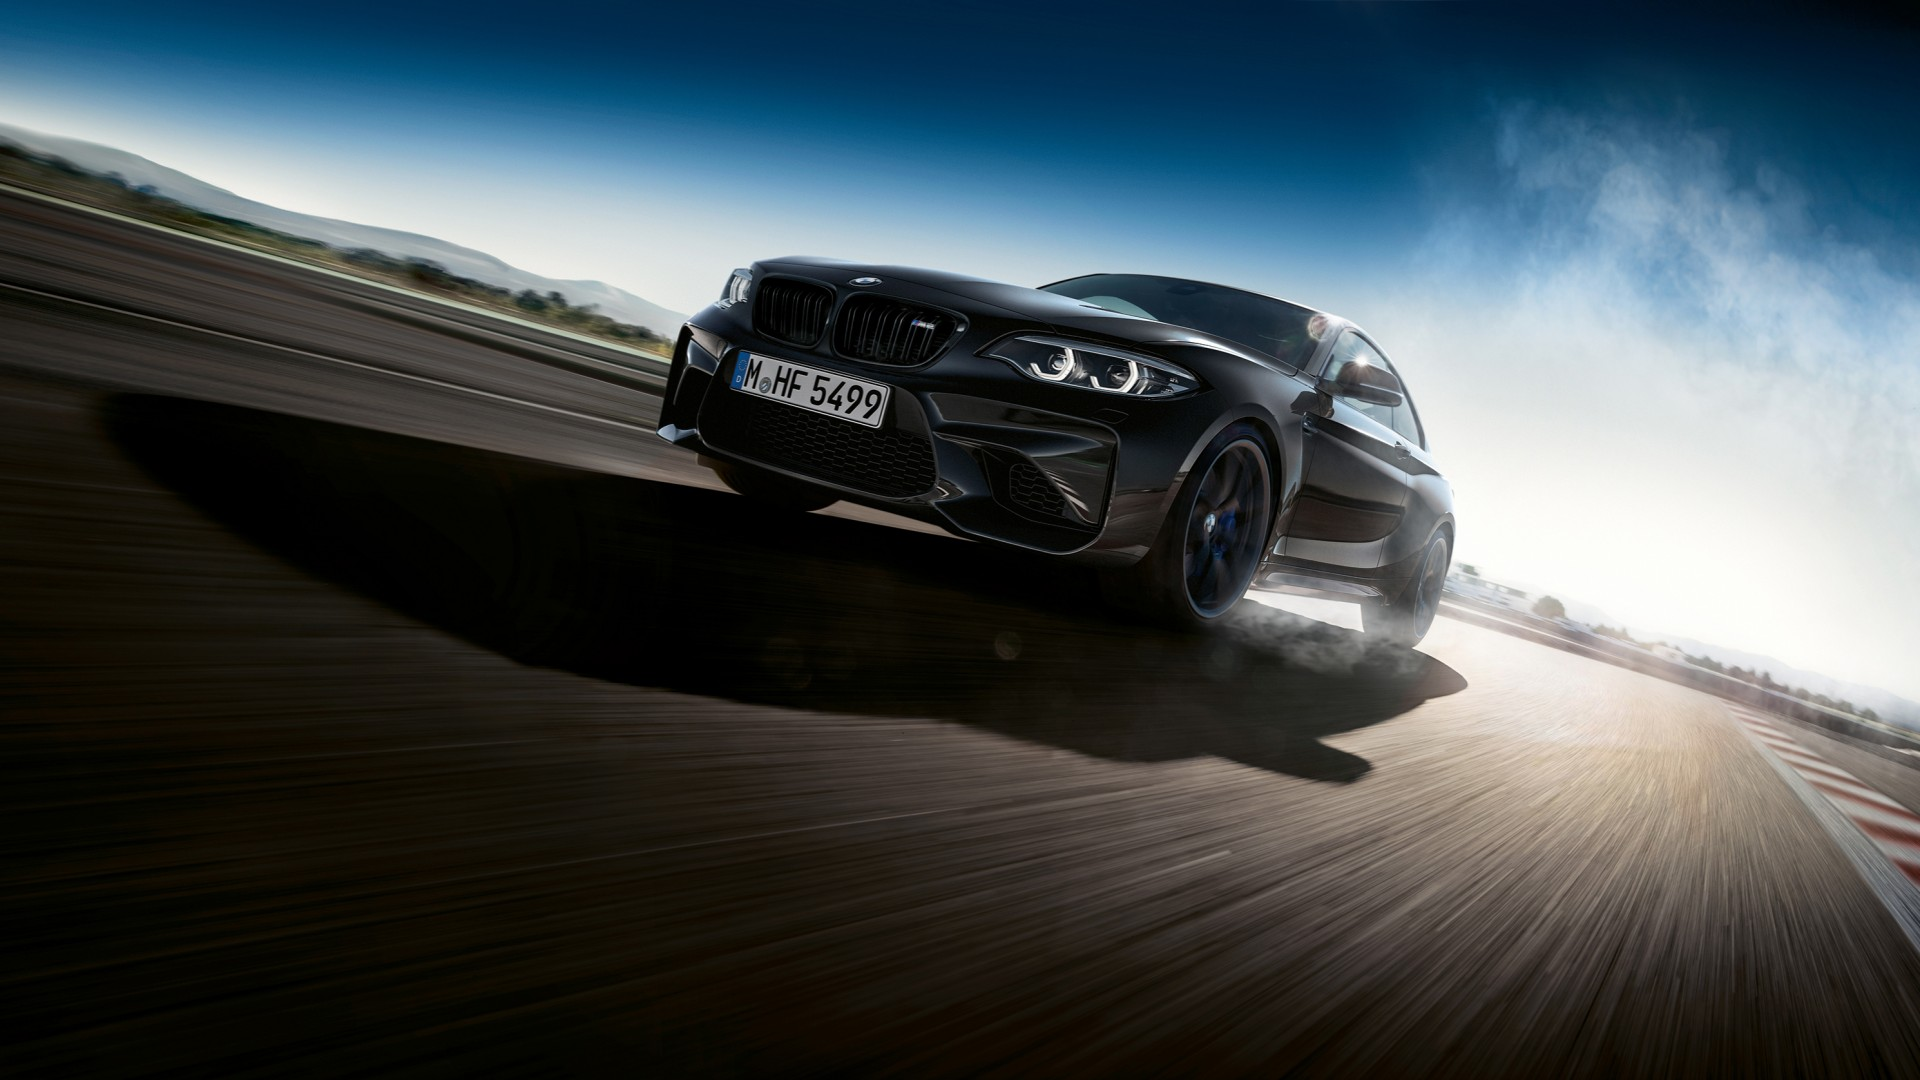 Ultra Hd Wallpapers 8k Cars Pack 2018 Bmw M2 Coupe Edition Black Shadow Wallpaper Hd Car